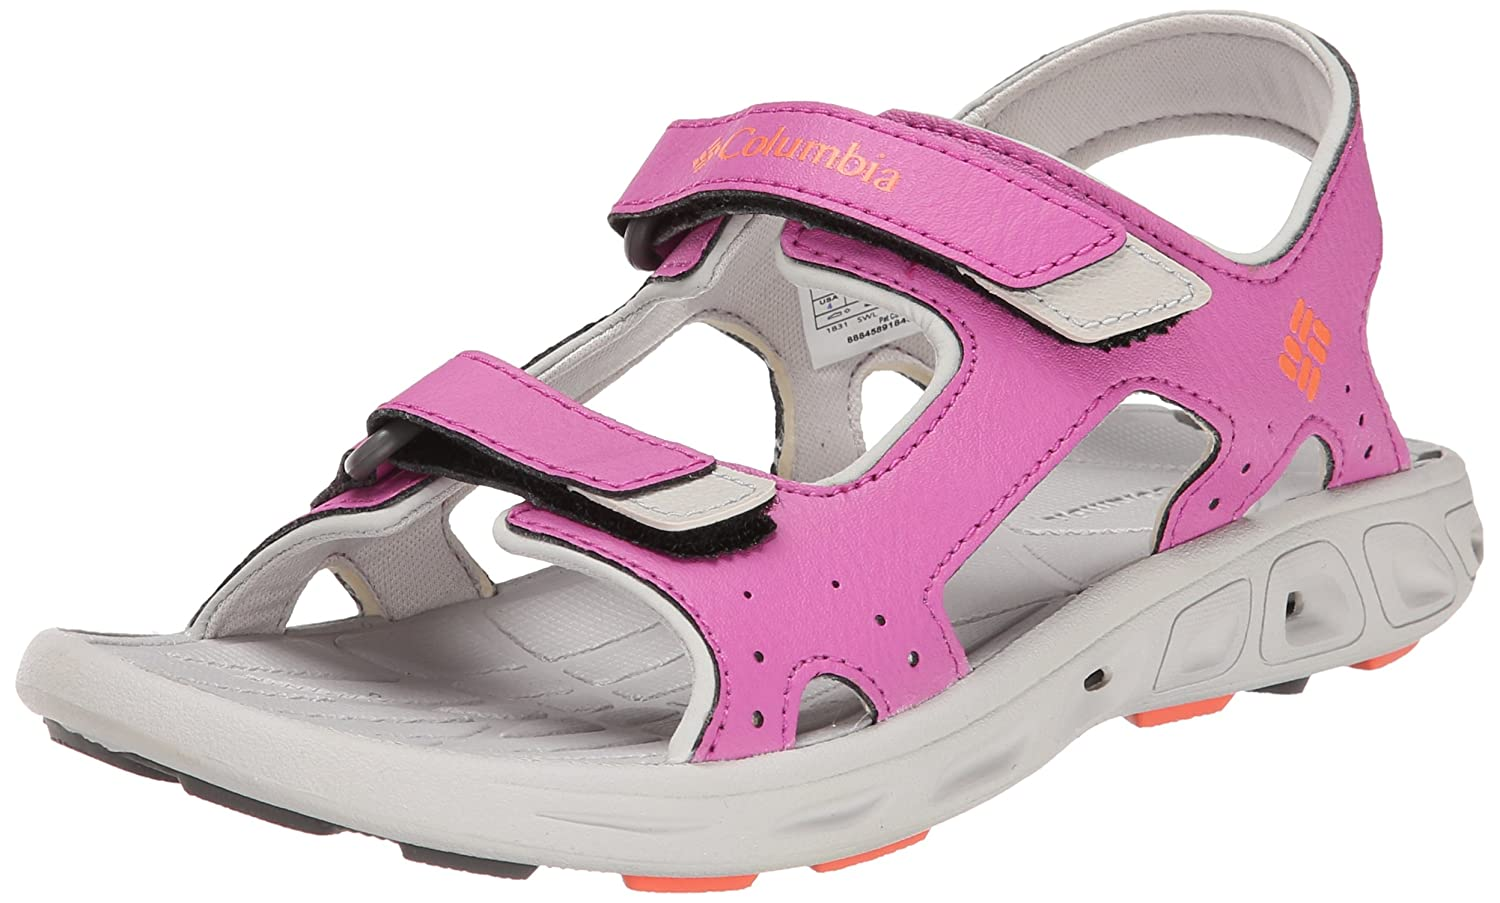 Columbia Youth Techsun Vent 3 Strap Water Sandal (Little Kid/Big Kid) Youth Techsun Vent - K